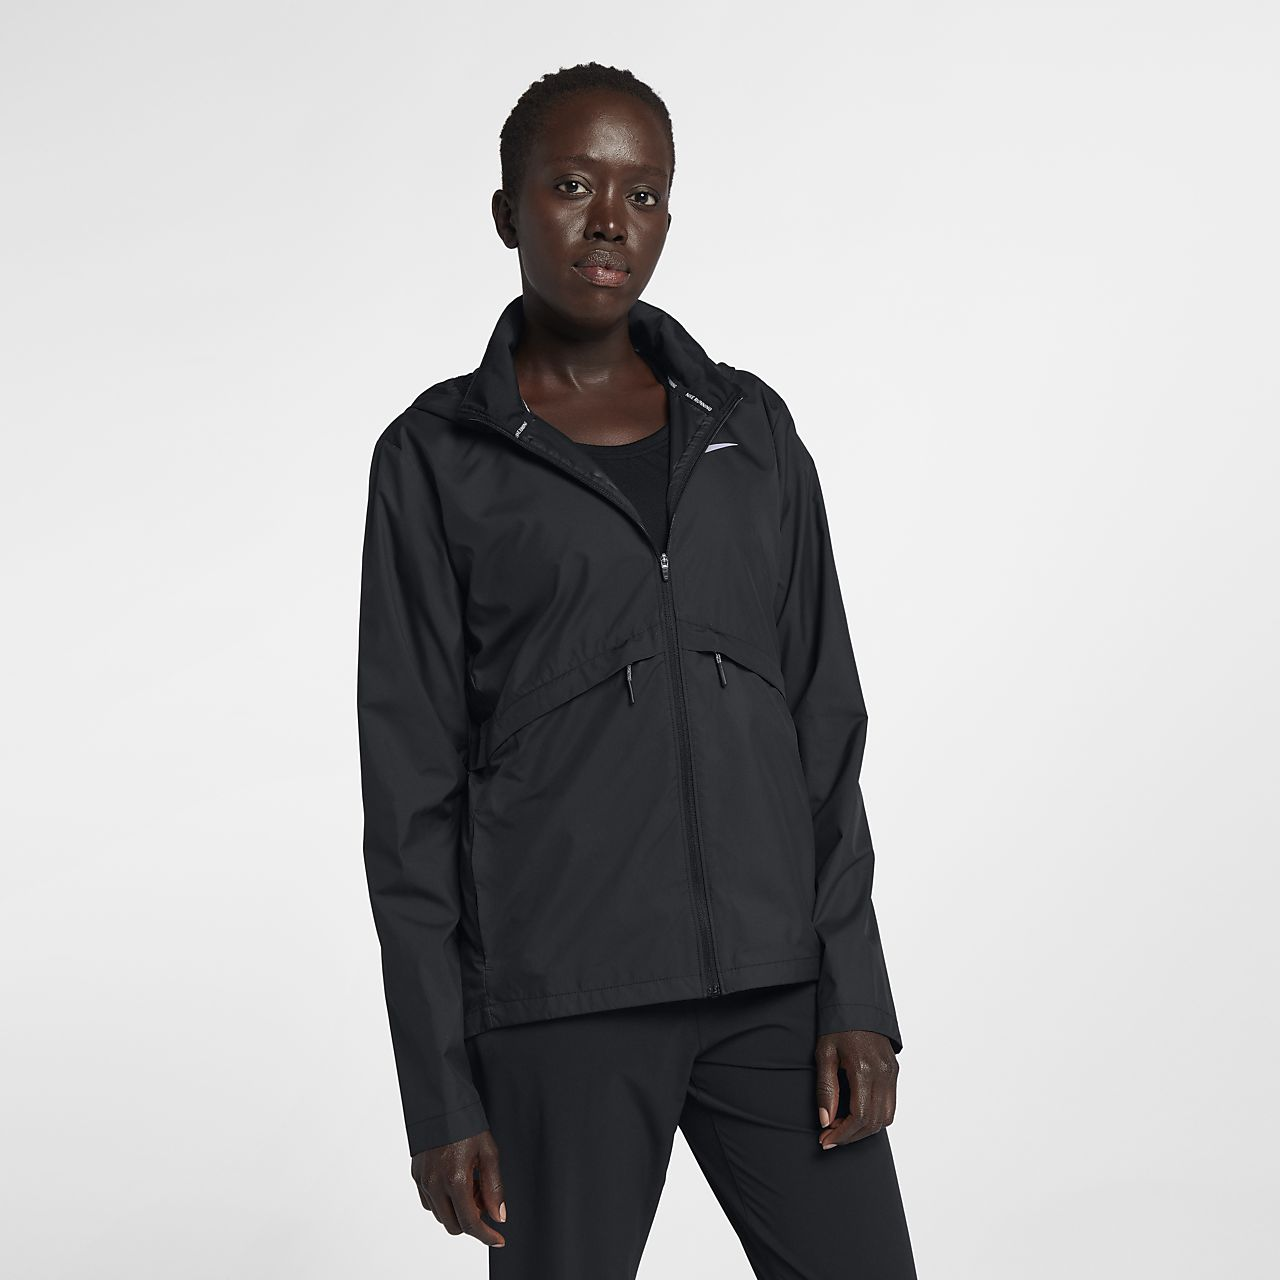 460c122a61f9 Nike Essential Women s Packable Running Rain Jacket. Nike.com CH